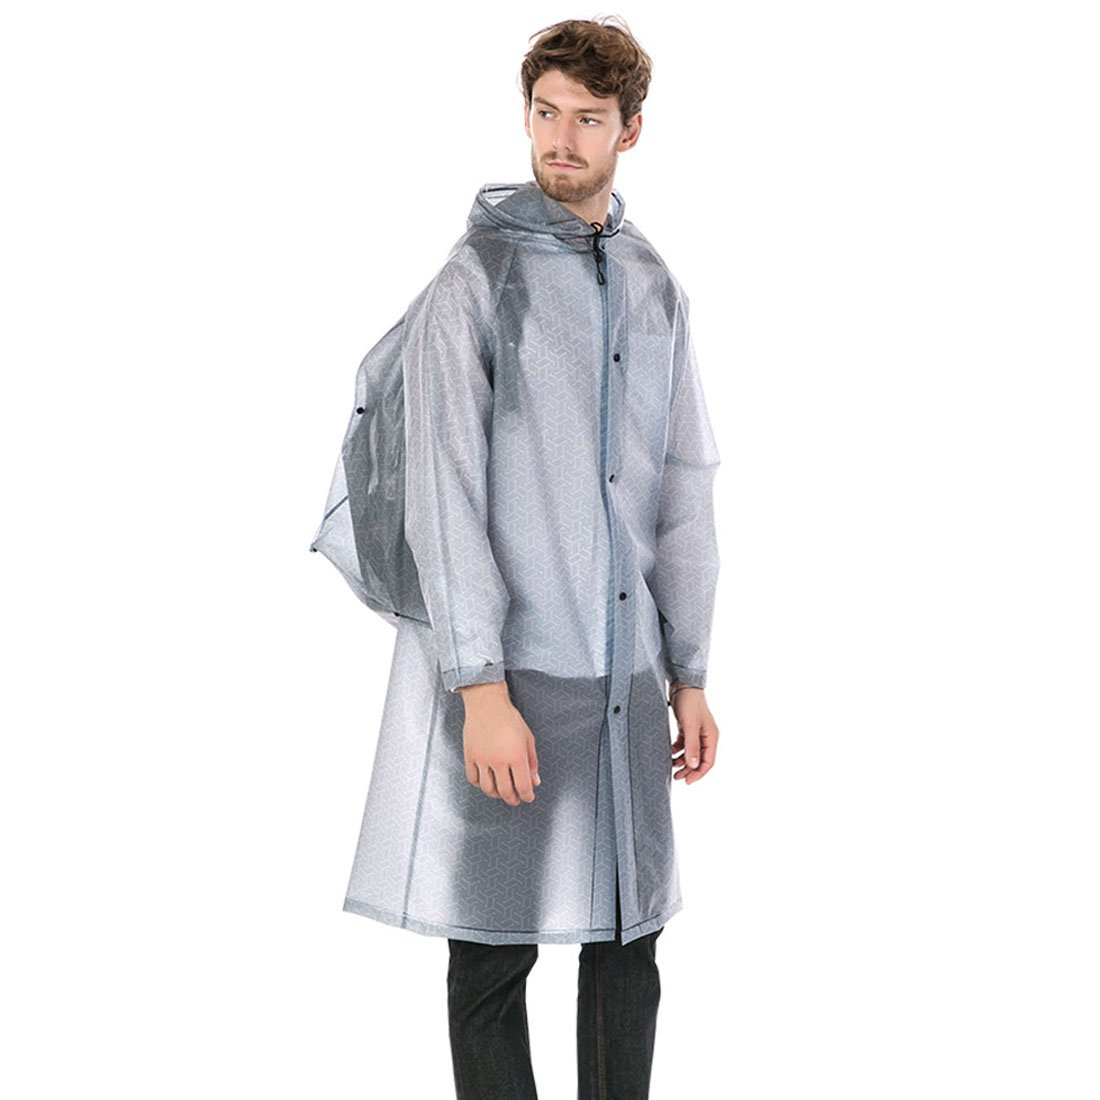 FREAHAP R Raincoat Poncho with Backpack Cover Stylish Poncho for Men Women Adults Grey L